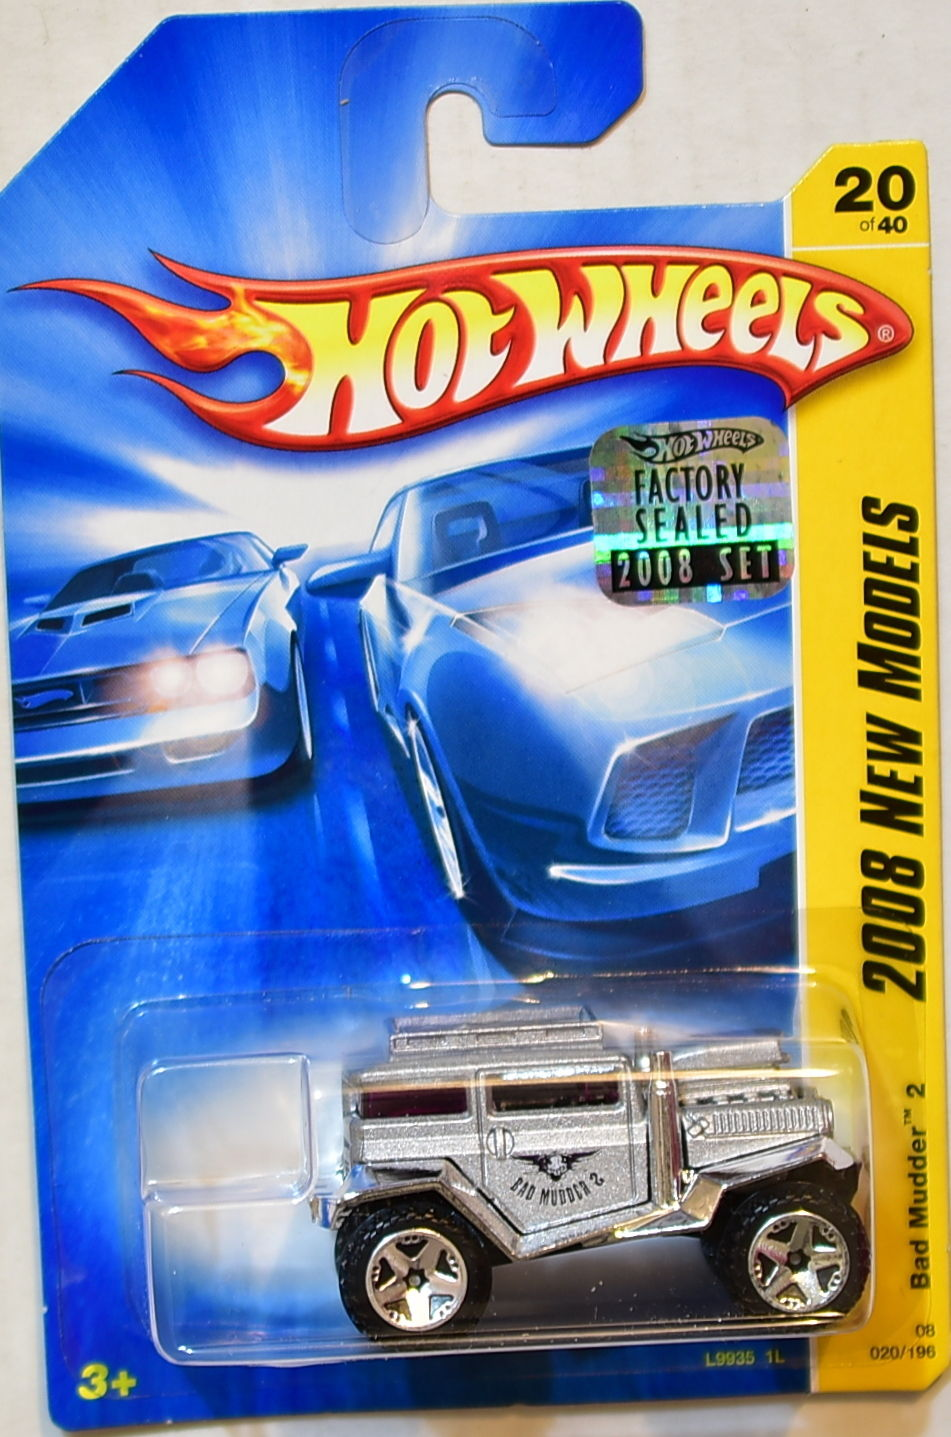 HOT WHEELS 2008 NEW MODELS BAD MUDDER 2 #20/40 SILVER FACTORY SEALED